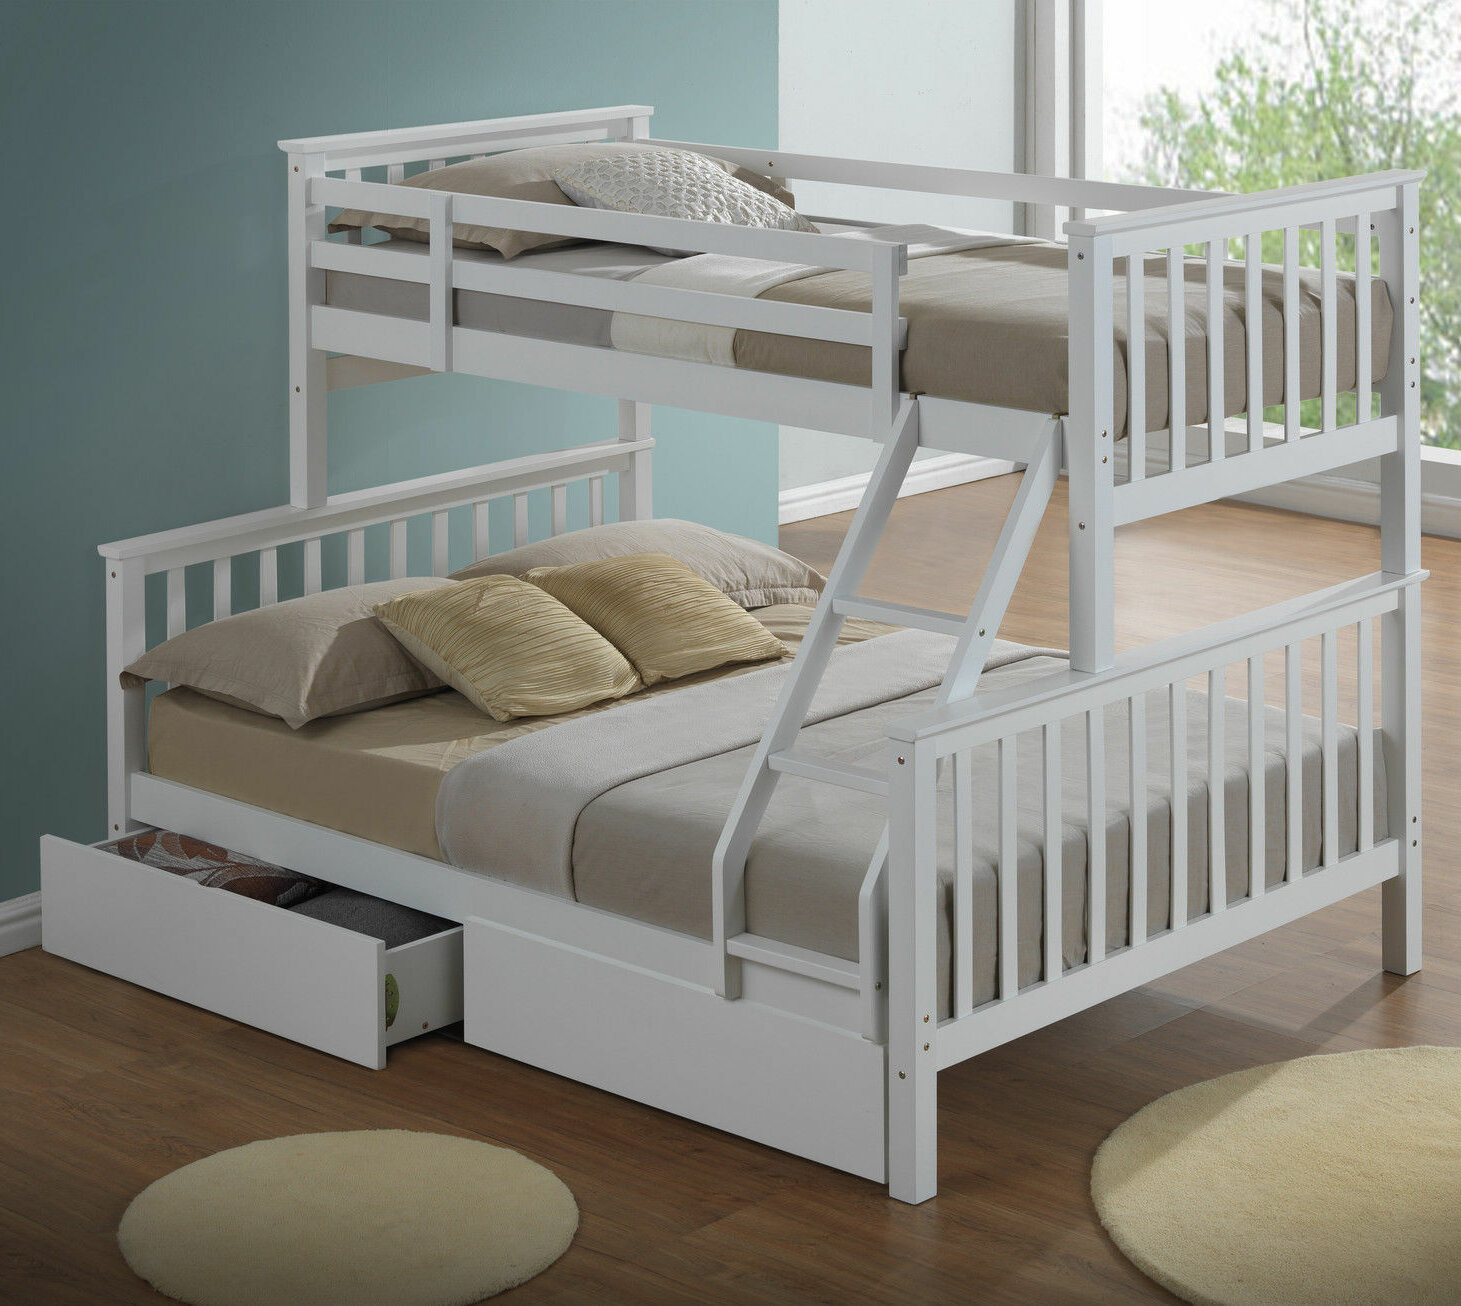 Home Loft Concept Mara Triple Sleeper Bunk Bed With Storage